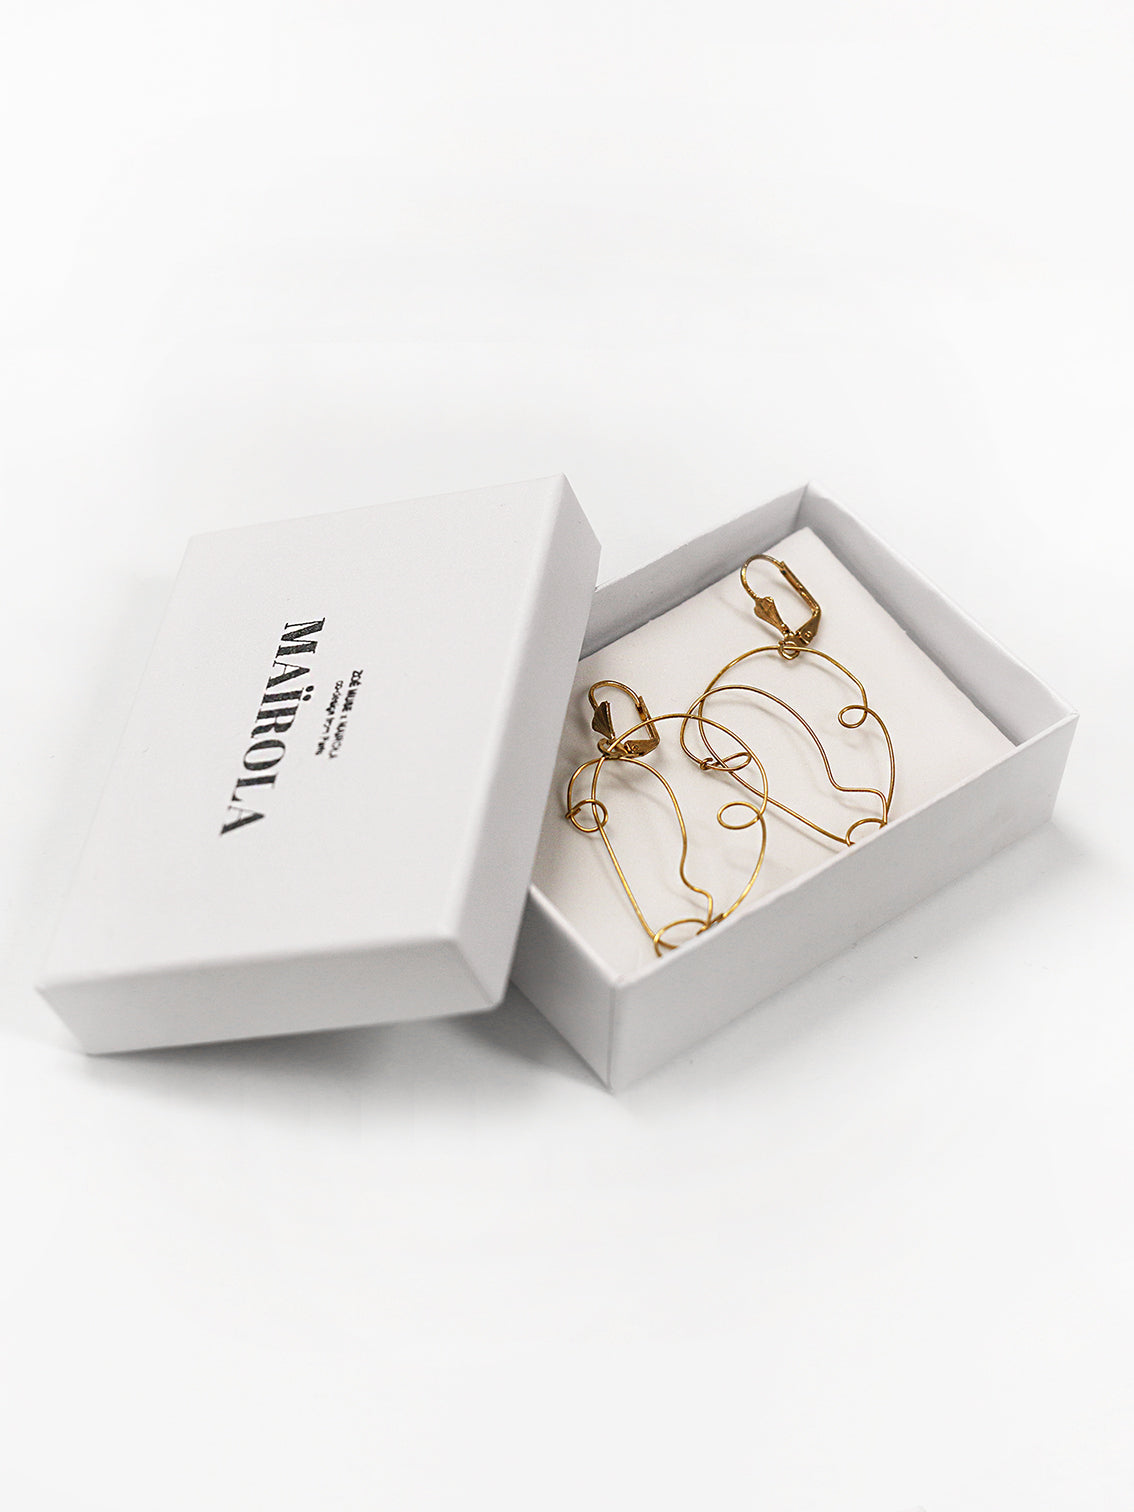 SOLD OUT<br>MAIROLA - Face earrings